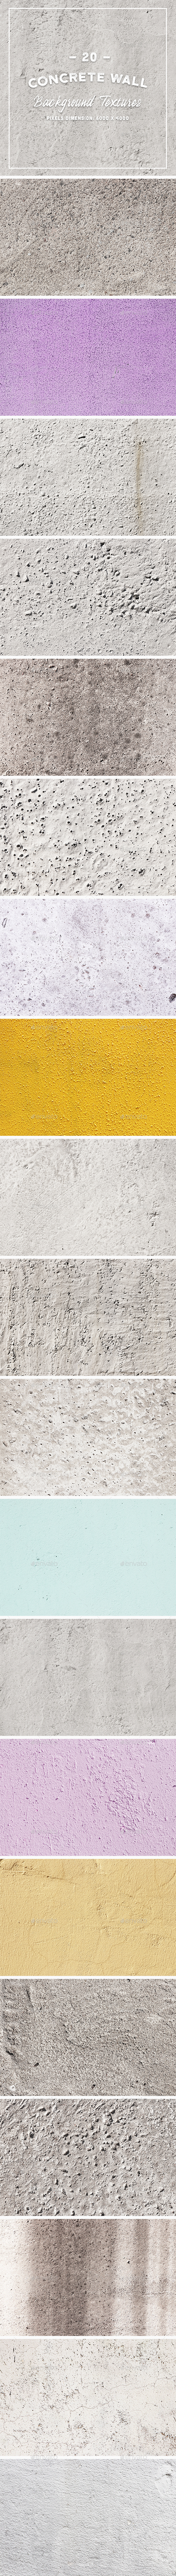 GraphicRiver 20 Concrete Wall Background Textures 20837971